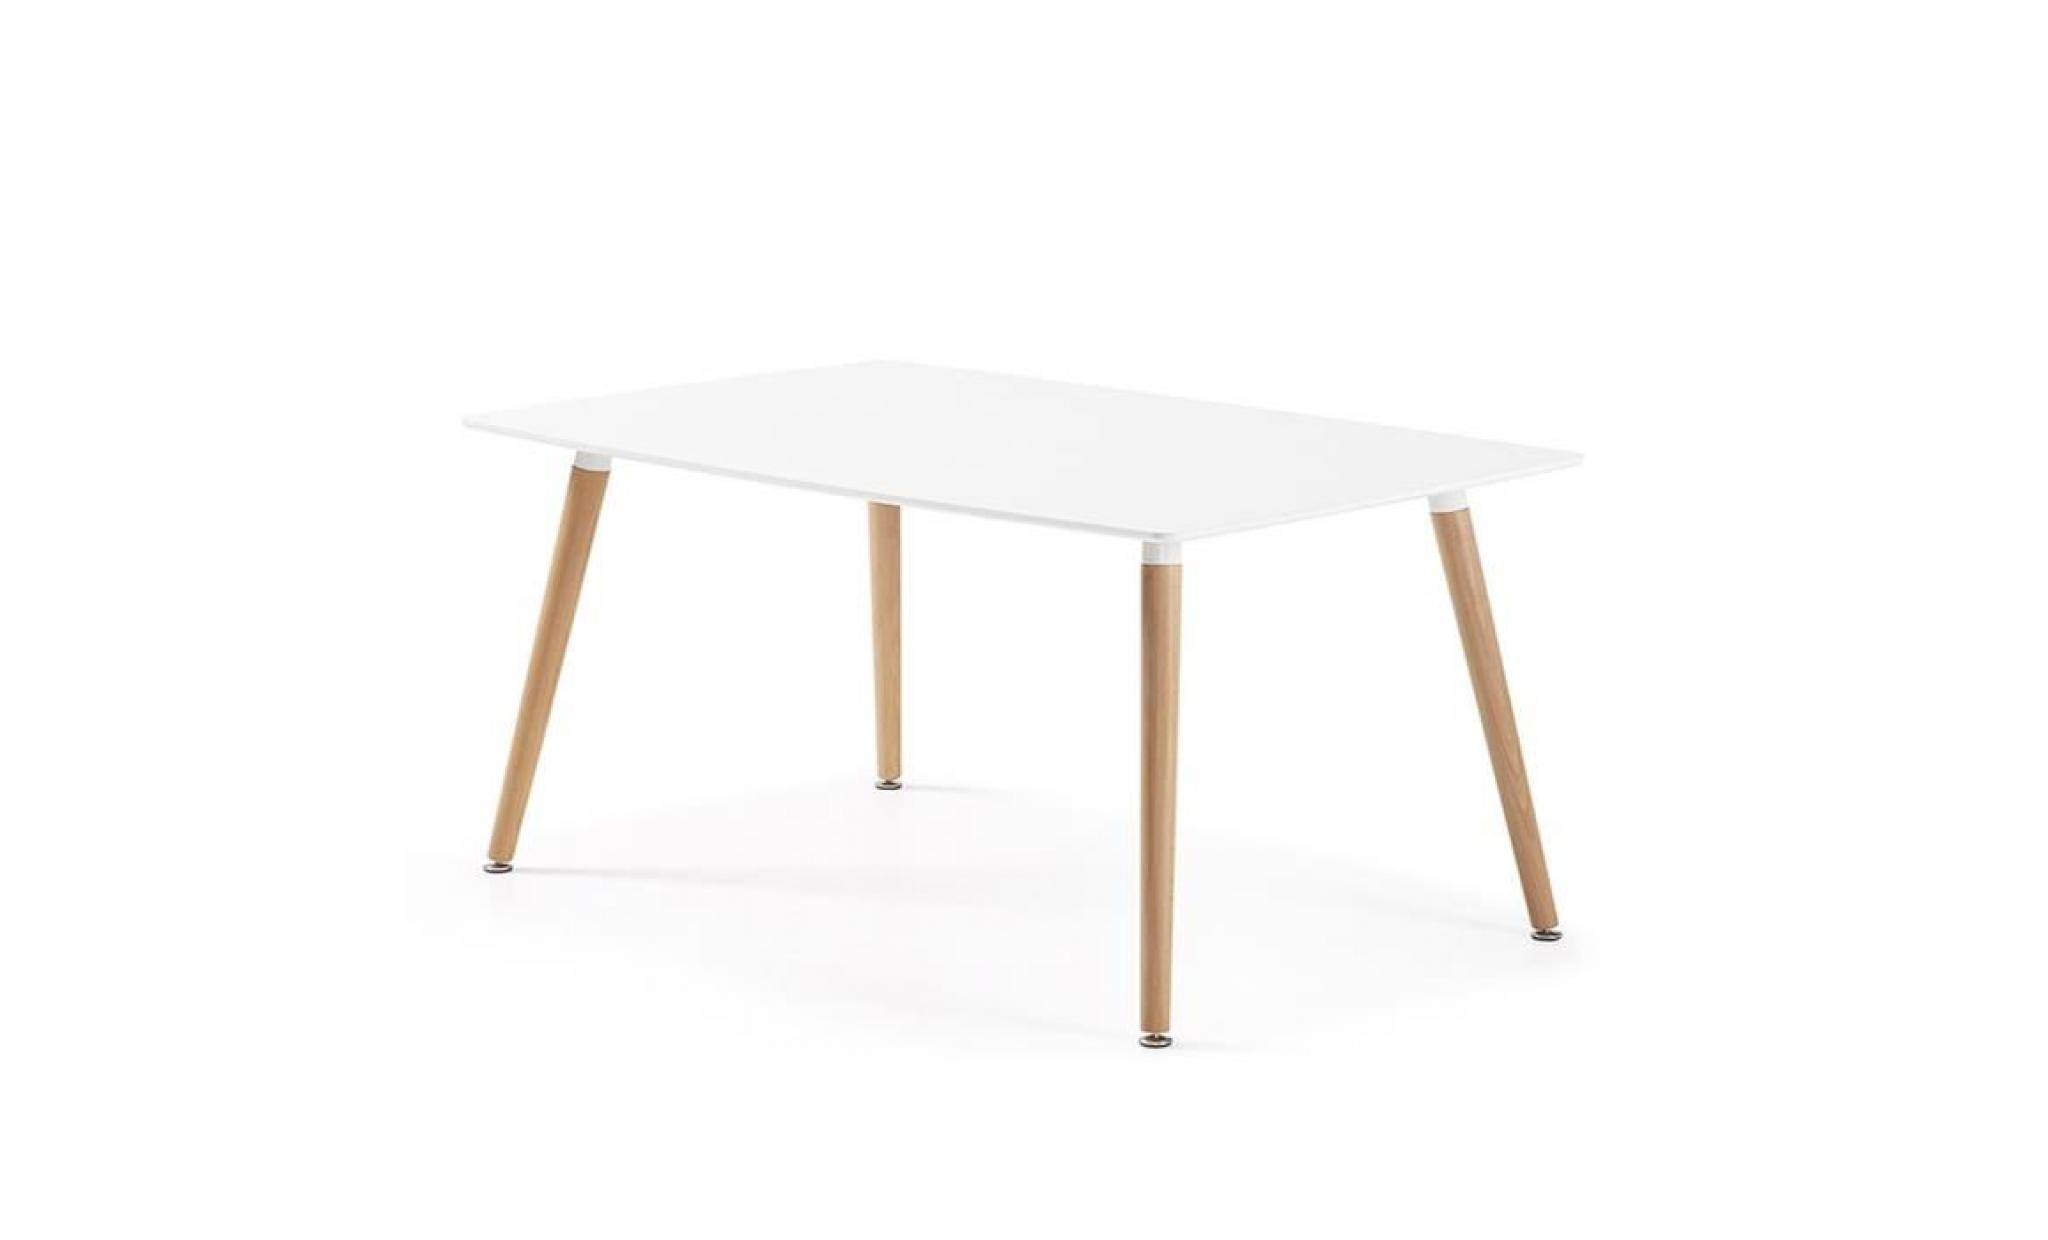 Table manger rectangulaire design blanche en bois laqu for Table a manger rectangulaire bois